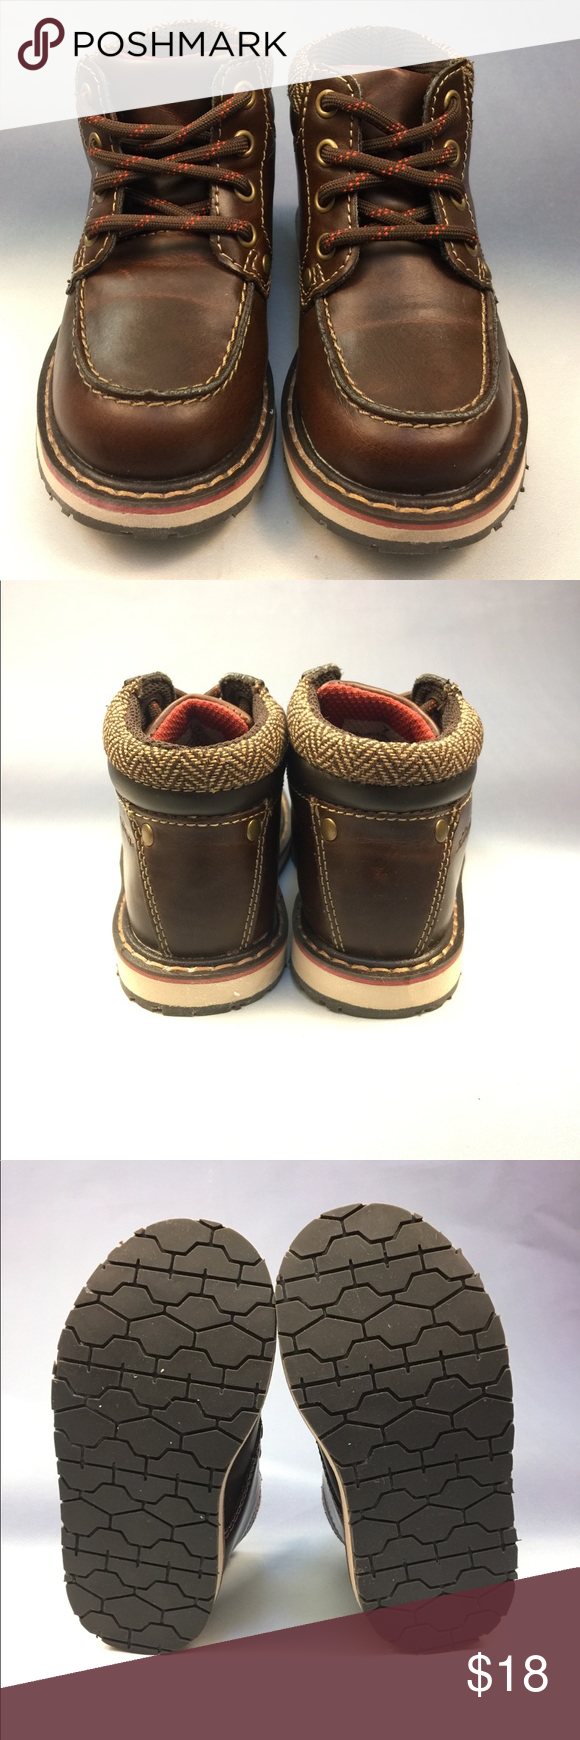 7f52faa5c Eddie Bauer Baby Boy Toddlers Size 7 These Pre-Owned Size 7 Eddie Bauer  Toddlers leather conditioned and sanitized to protect your Baby Boy's  little feet.